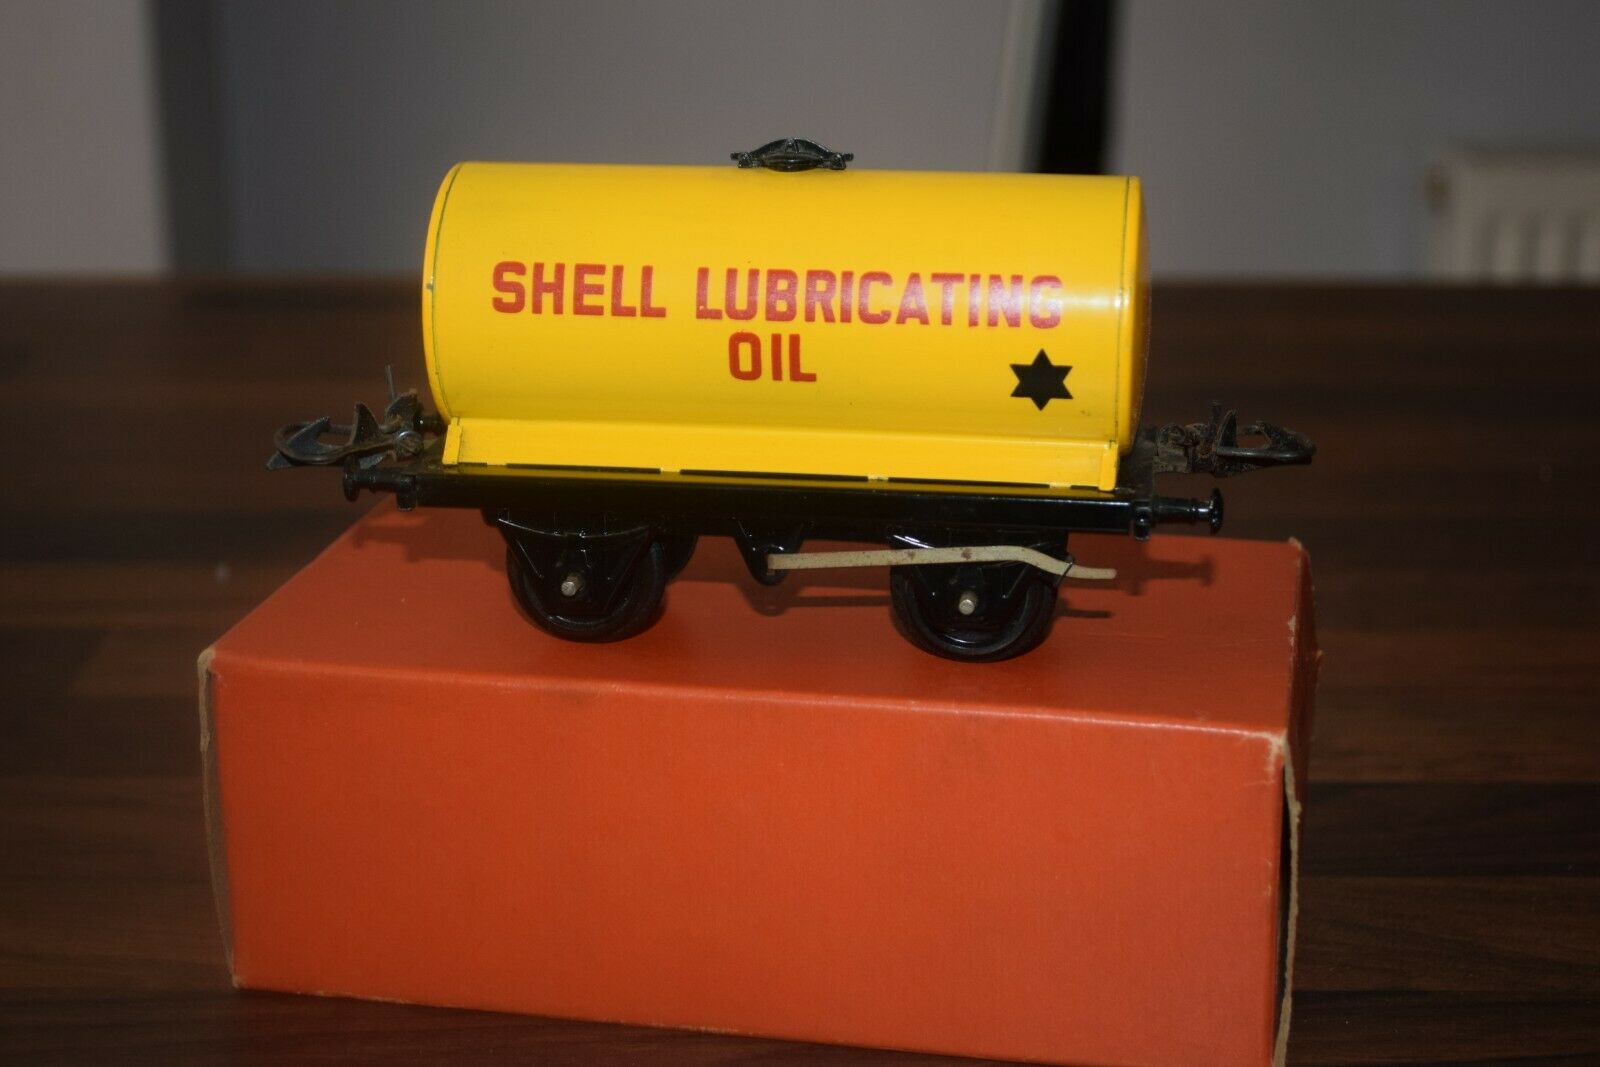 HORNBY i treni O GAUGE No 50 gituttio TANK WAGON SHELL LUBRICATING OIL nmint